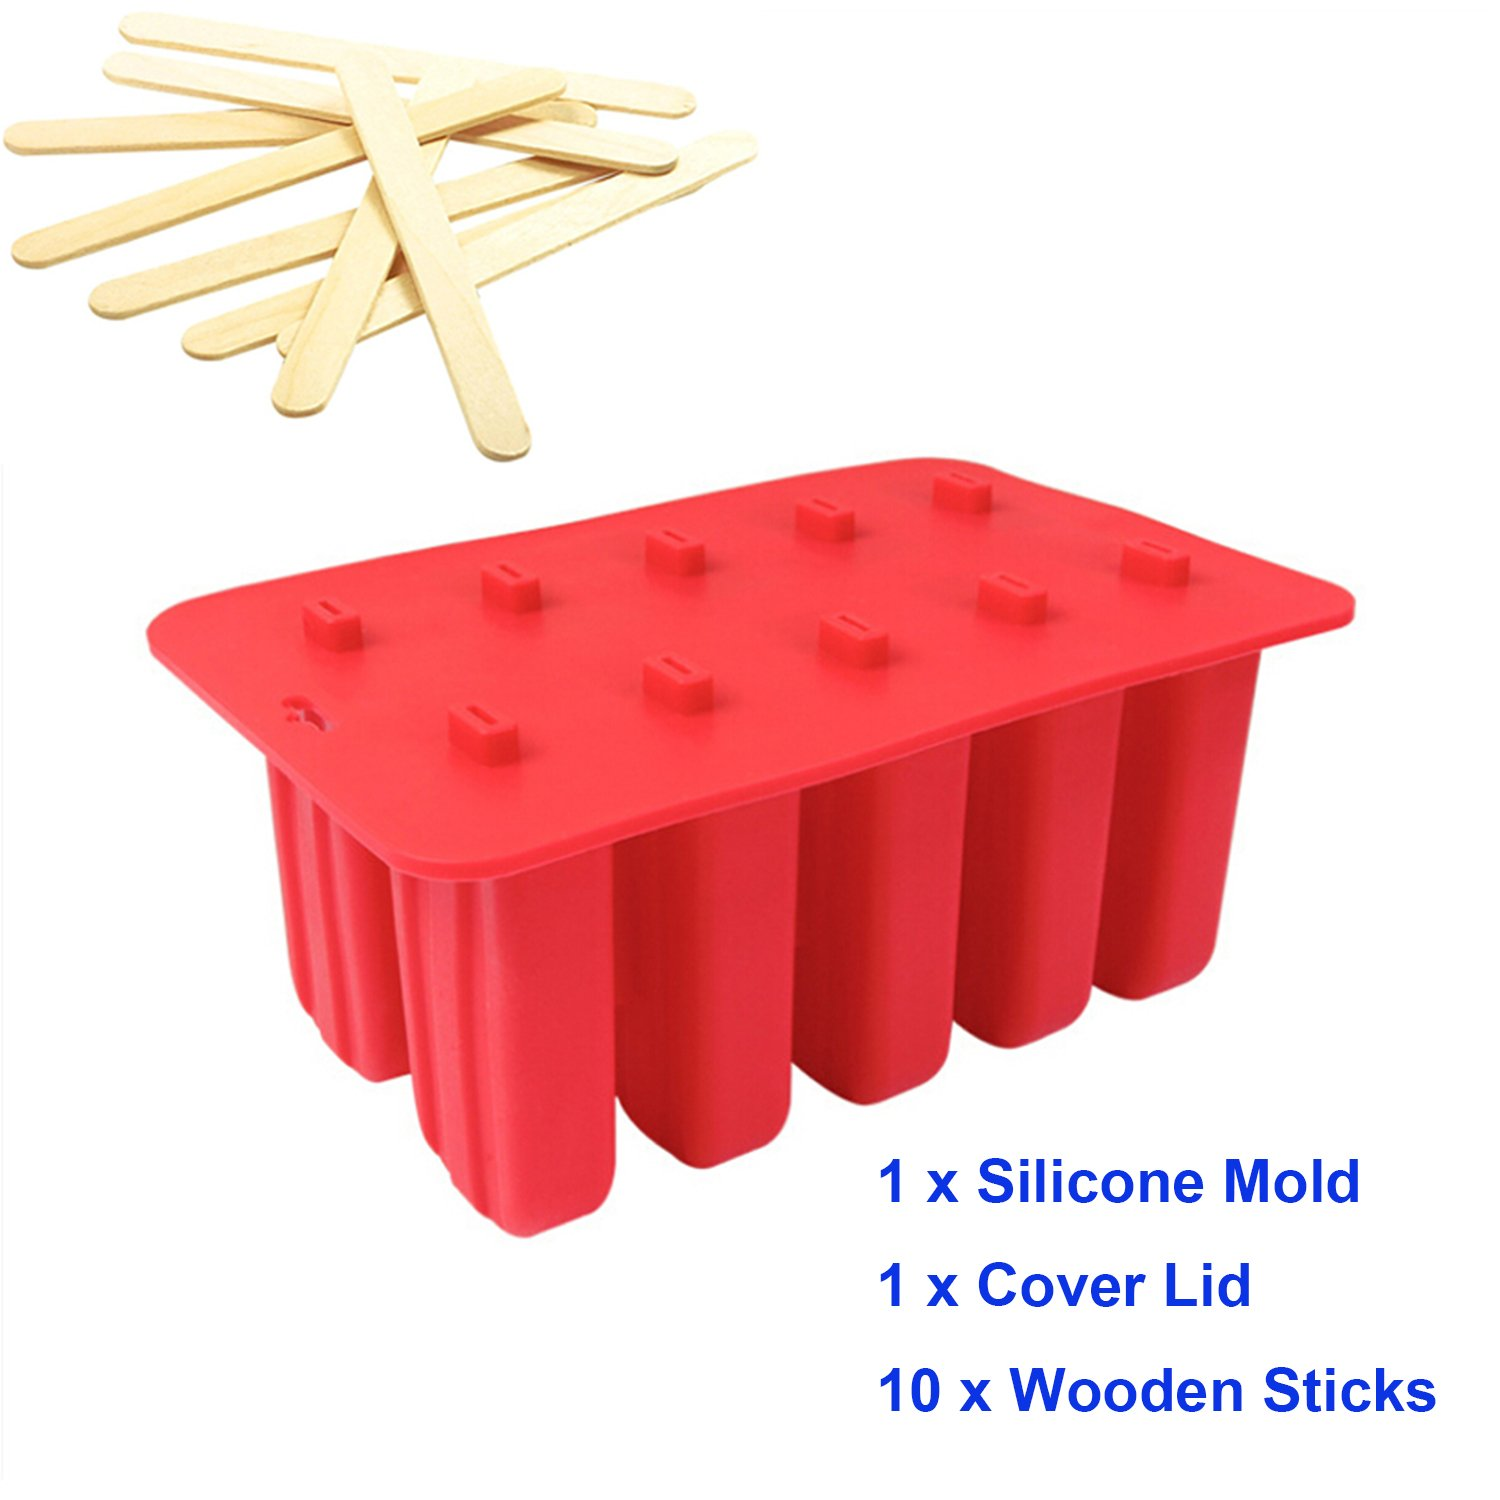 10 Cavity Slicone Frozen Ice Cream Pop Maker Popsicle Molds with Cover Lid +10 Wooden Sticks for Toddlers, Kids and Adults - BPA Free (White)